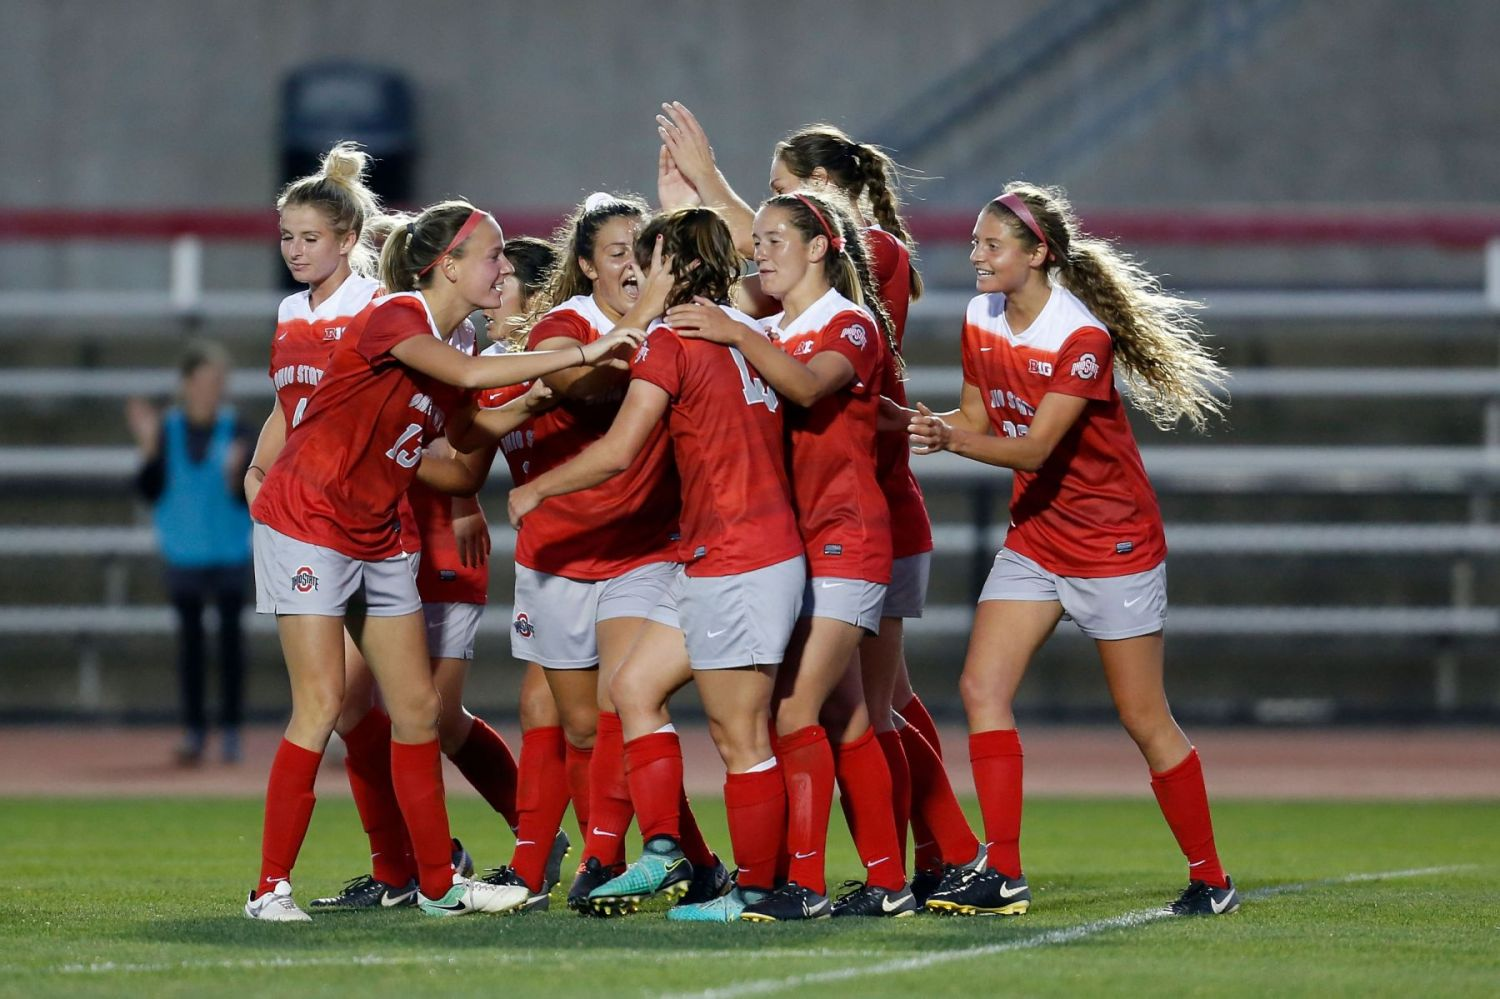 Ohio State Women's Soccer plays Penn State at Jesse Owens Memorial Stadium on Sunday, September 30, 2017 in Columbus, Ohio. Ohio State defeated Penn State 1-0.